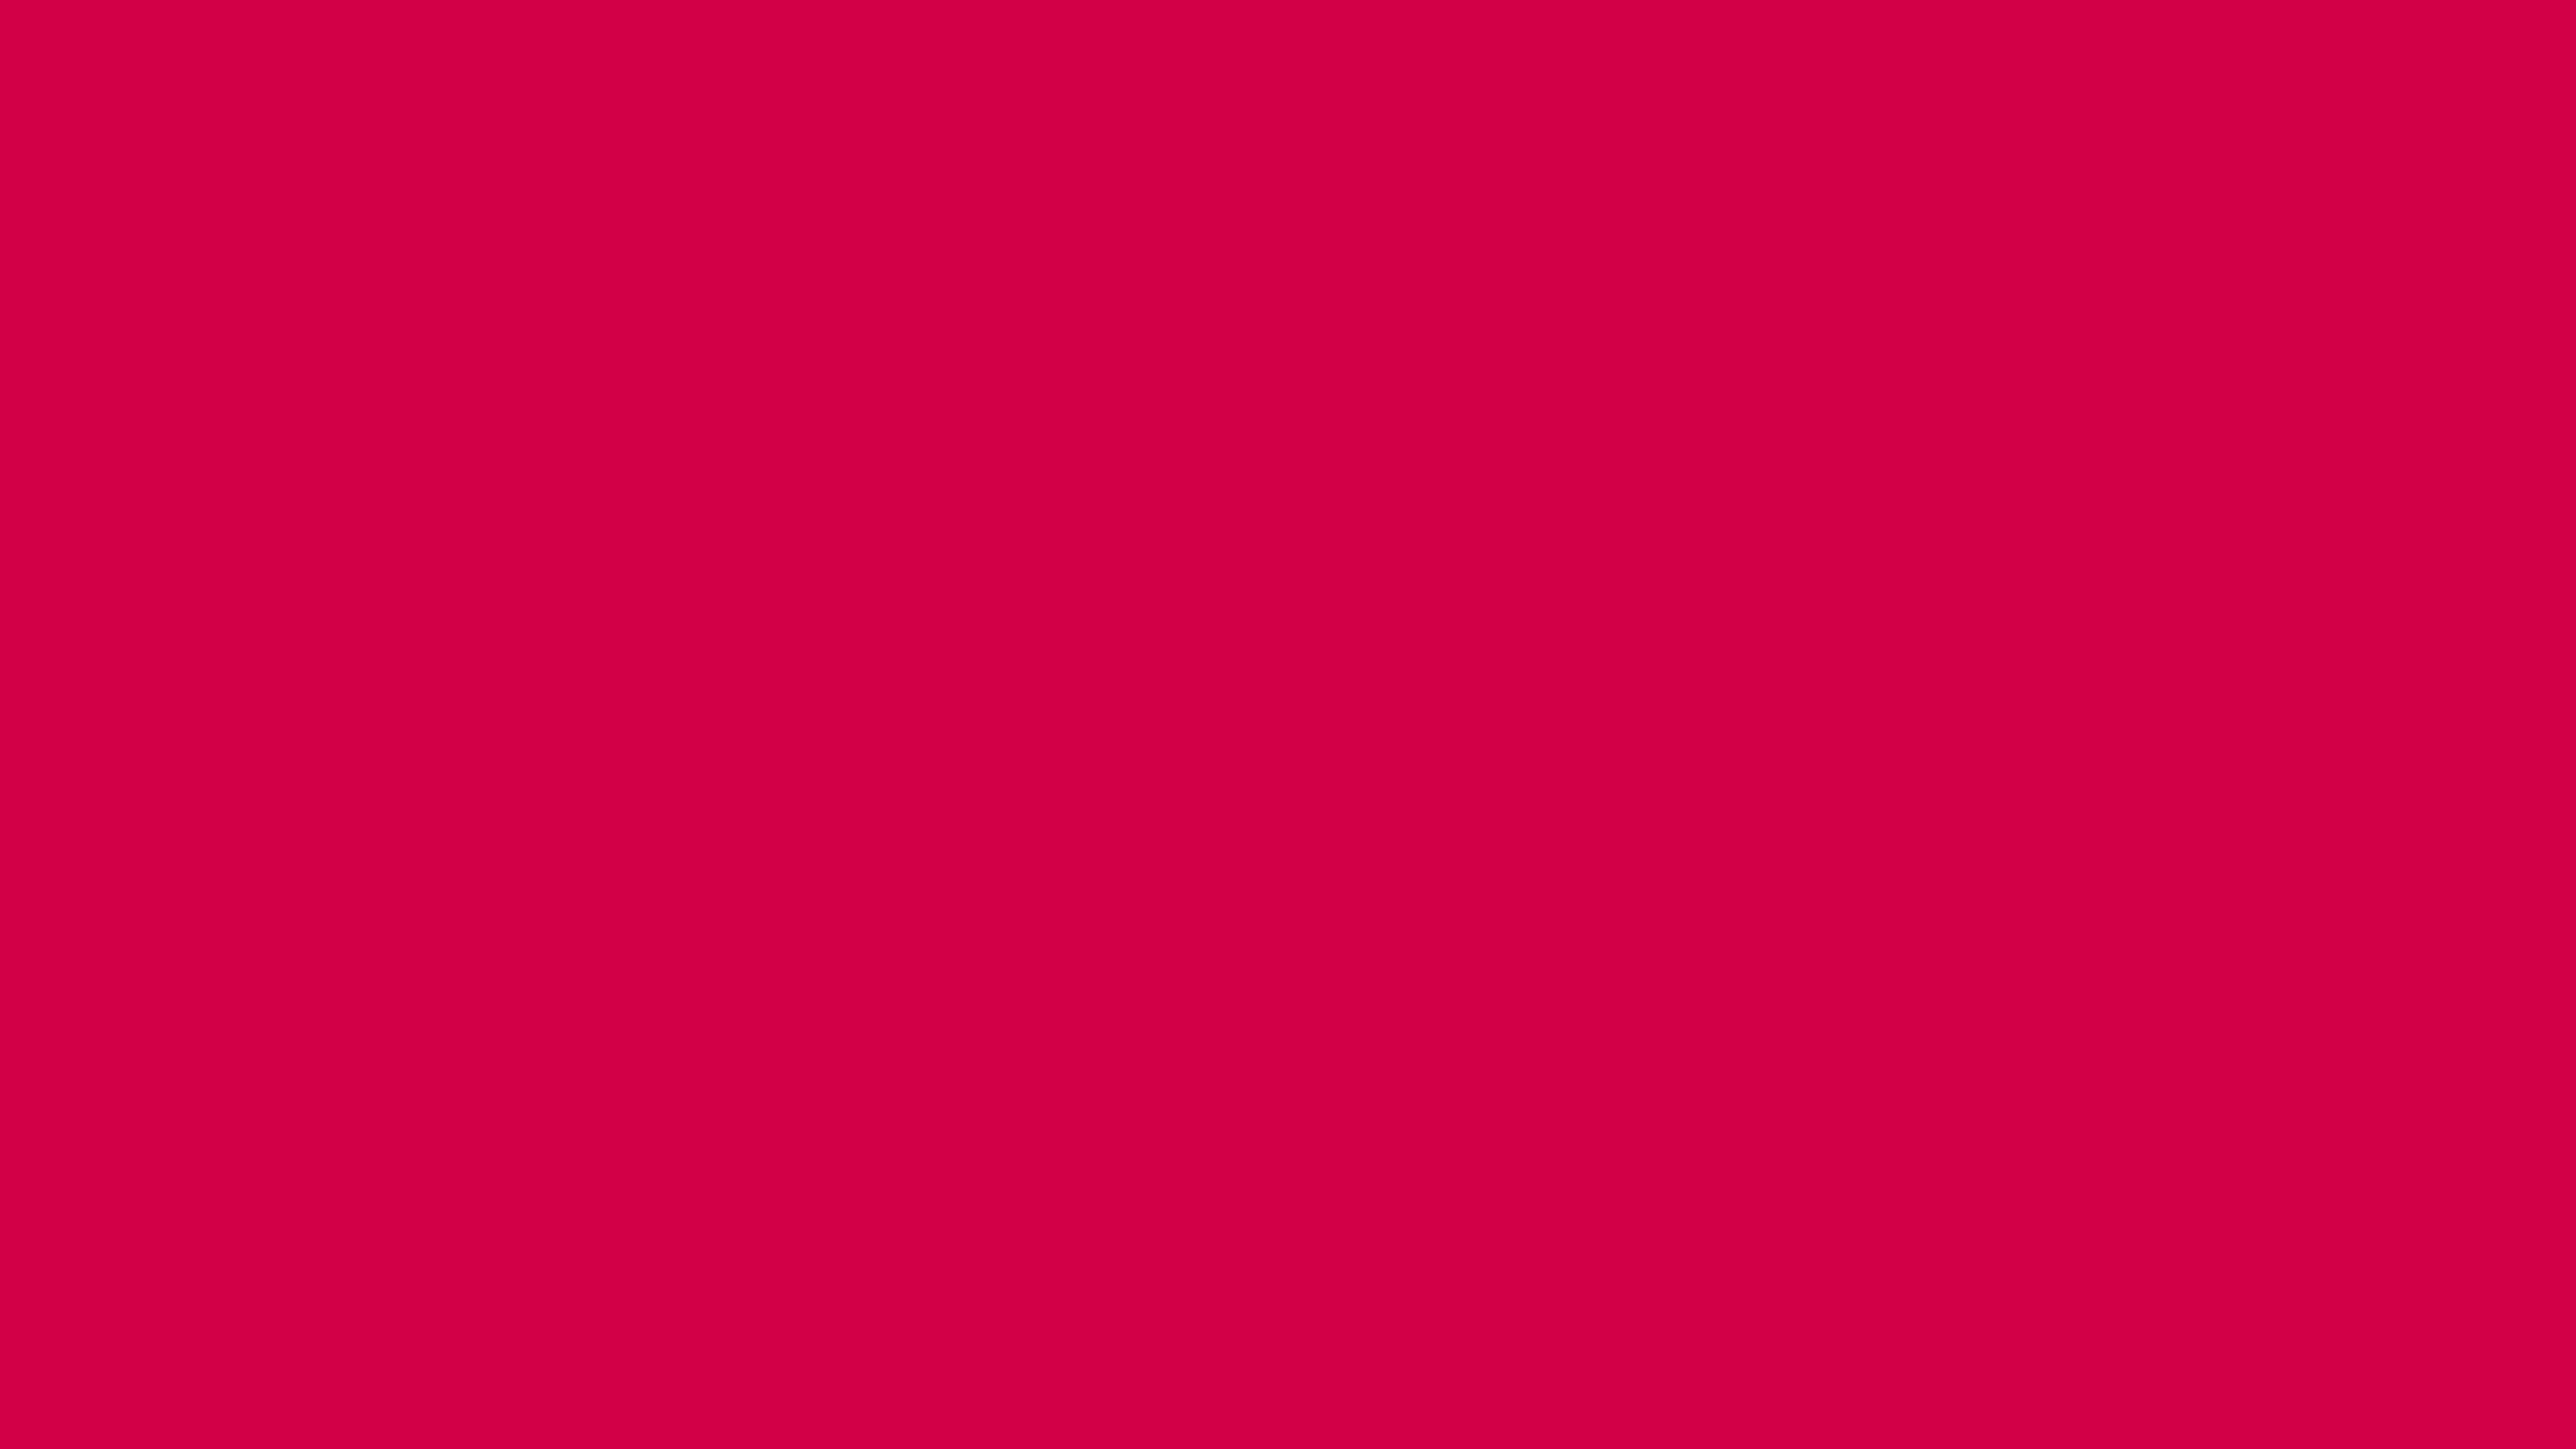 4096x2304 Spanish Carmine Solid Color Background